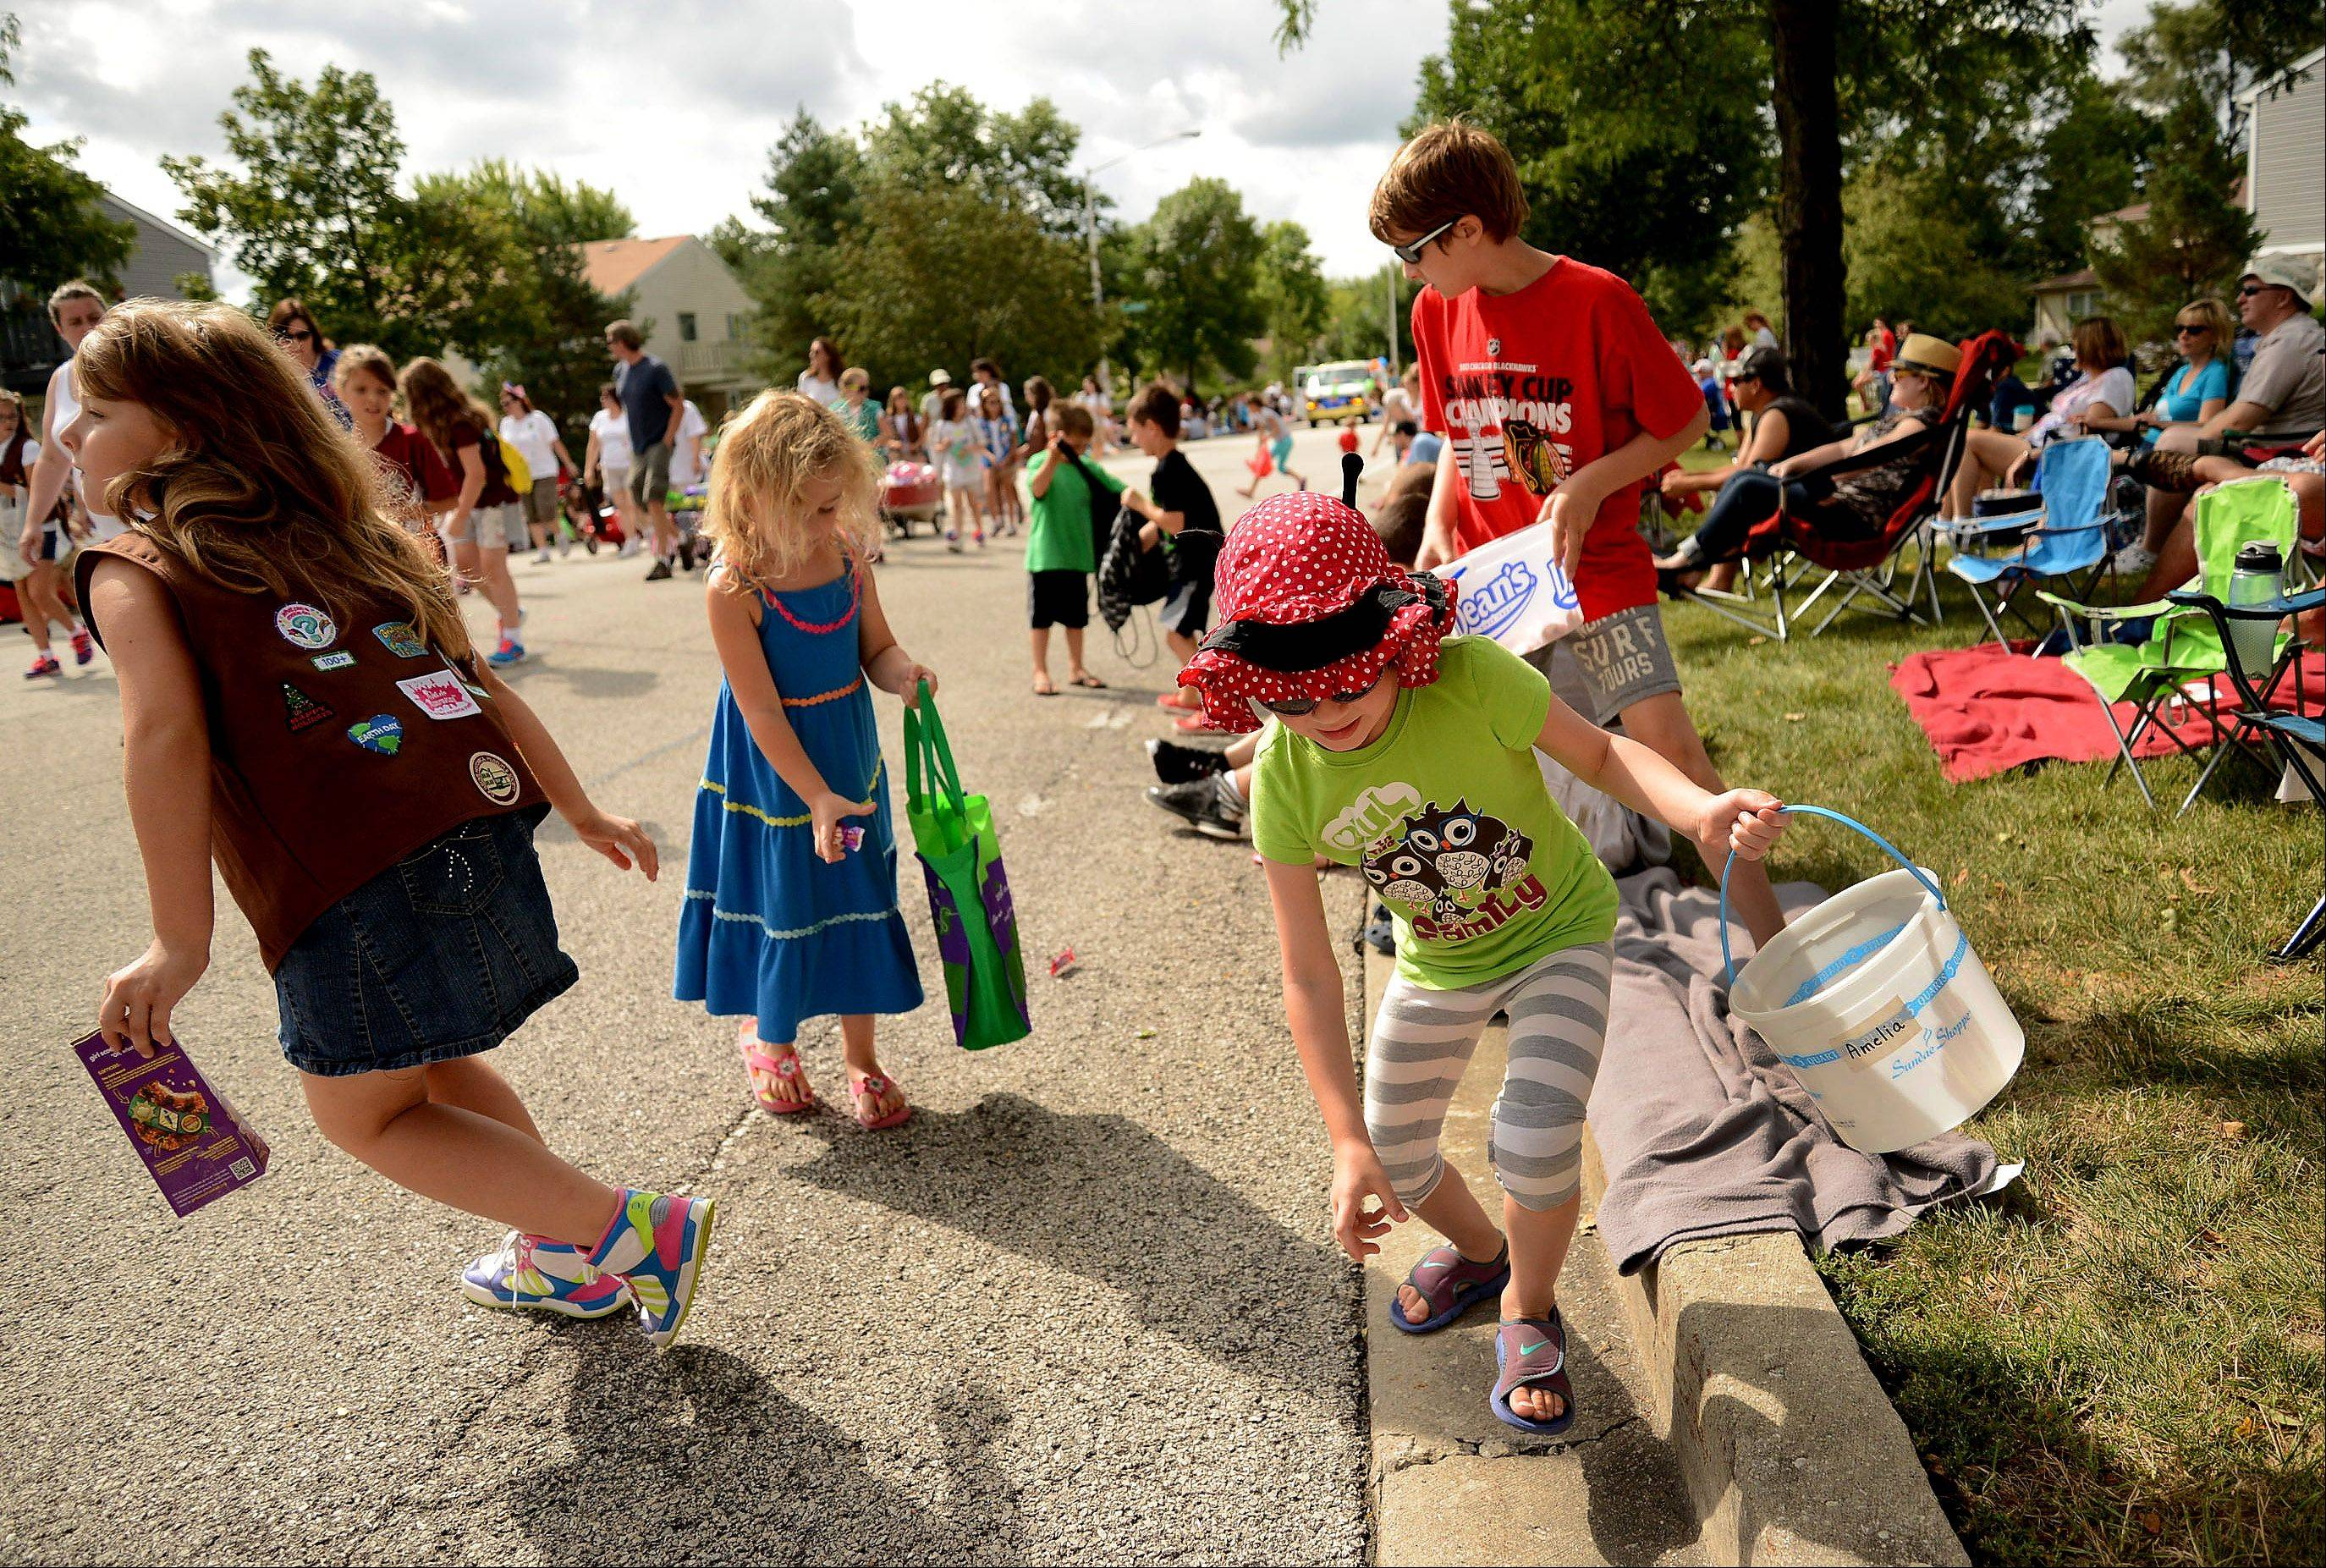 4-year-old Amelia Kozial, right, chases after some candy Monday along the parade route at Schaumburg's Septemberfest parade.